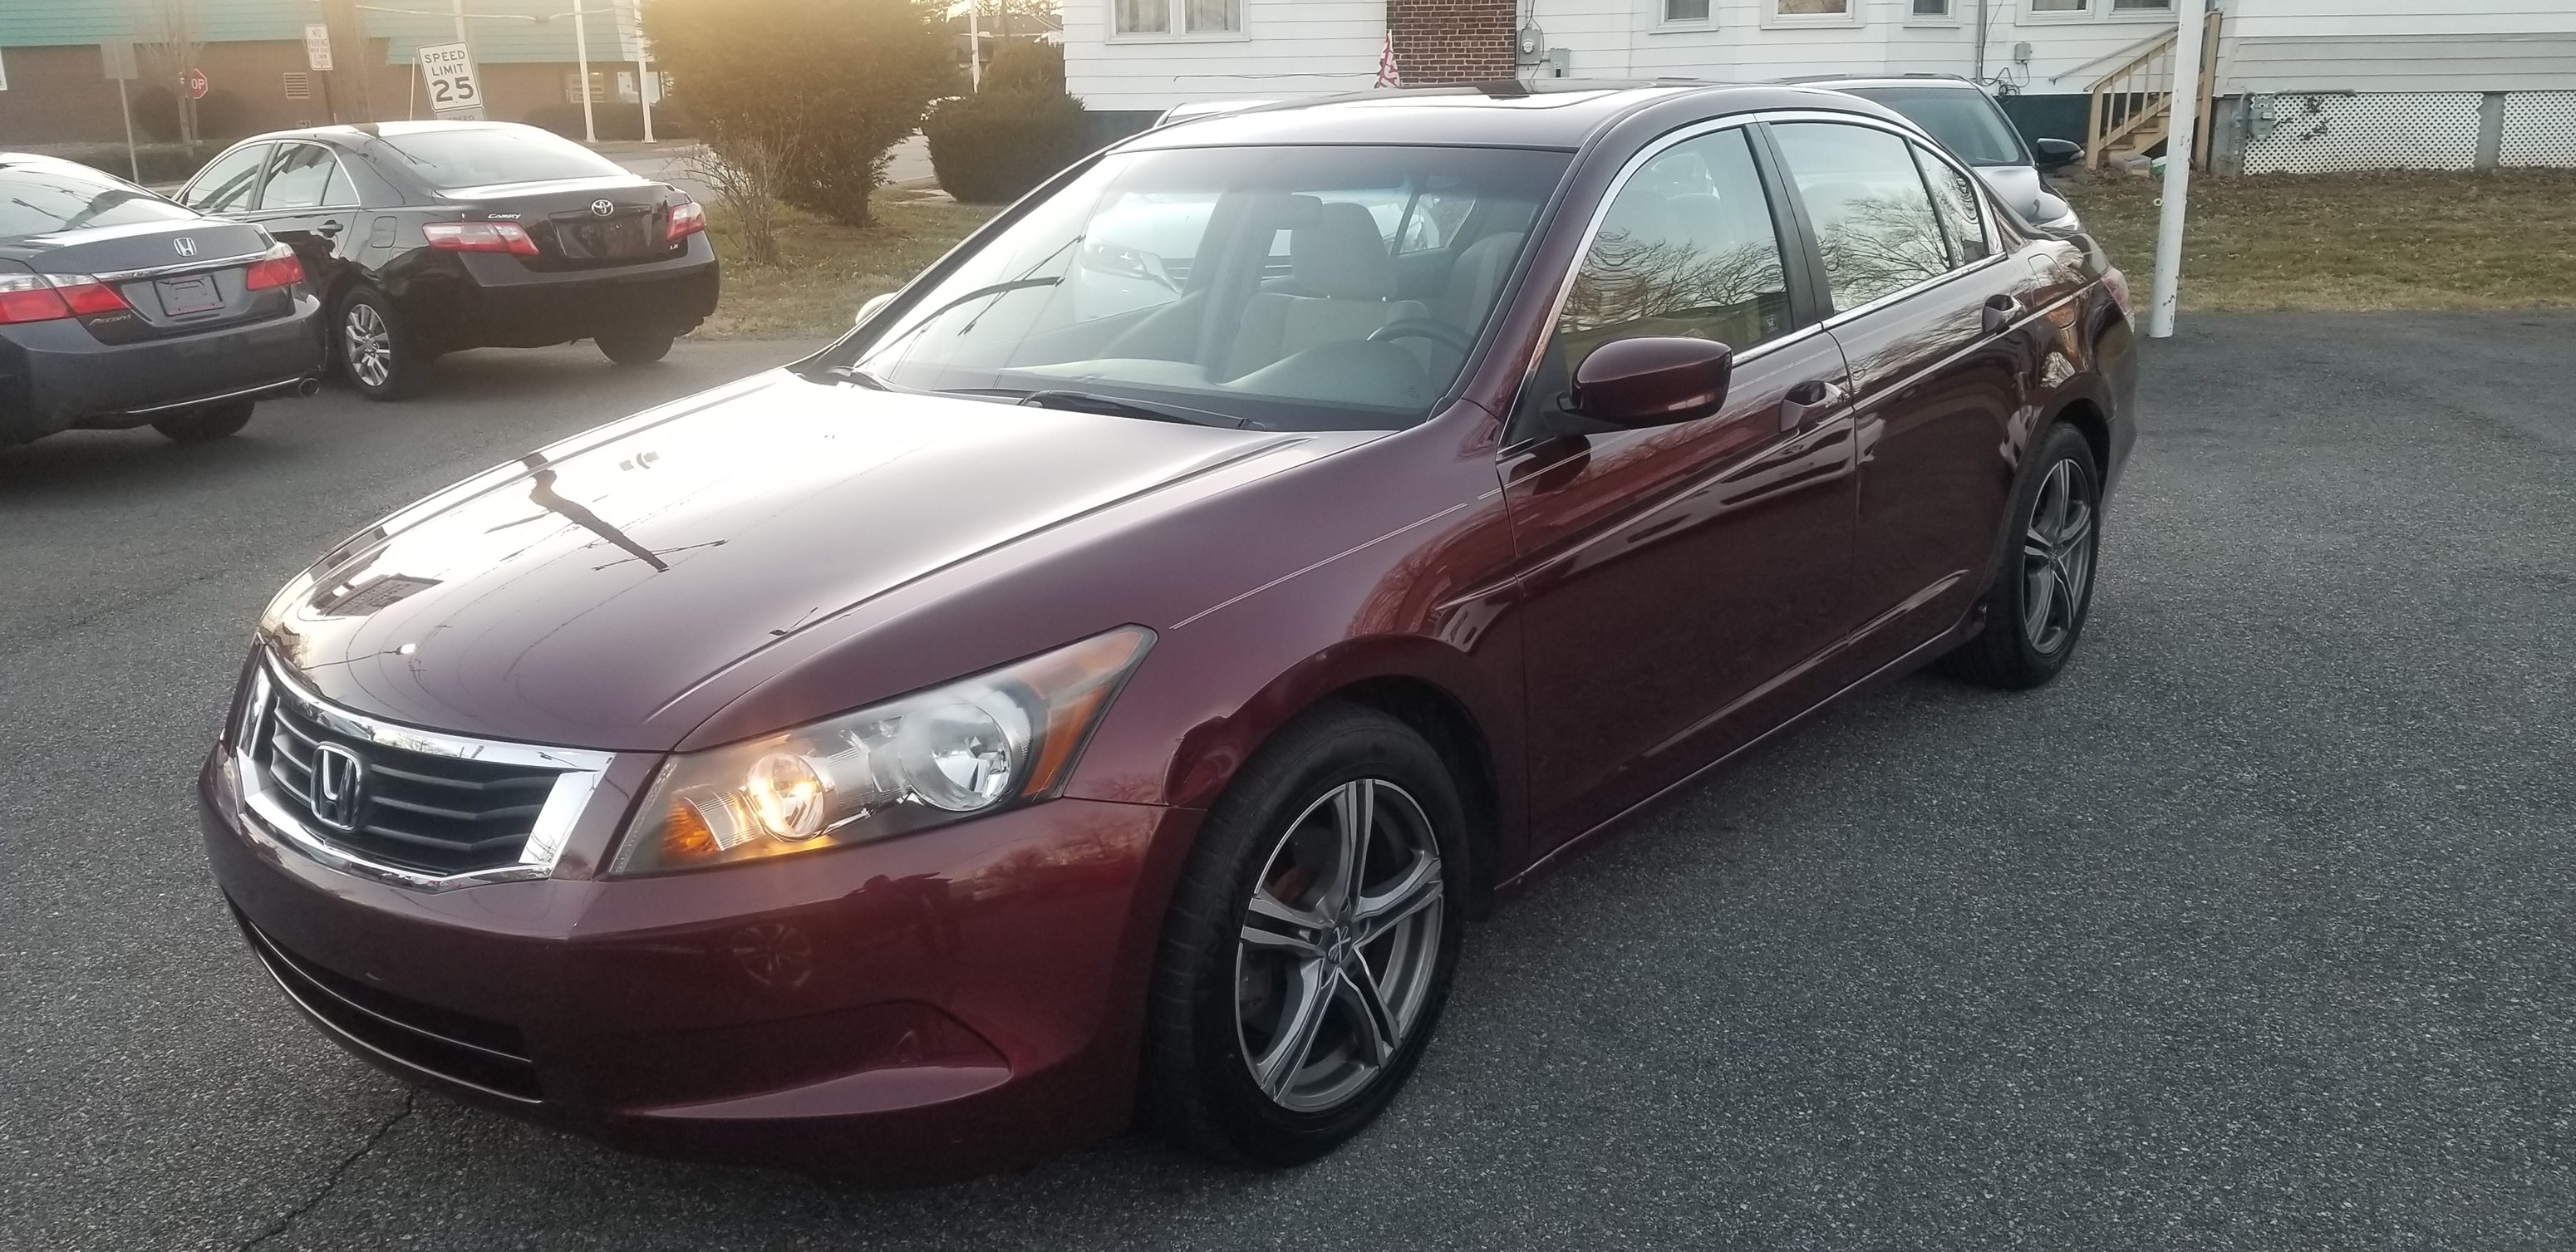 2010 honda accord ex 2 4l 4 cylinder clean title clean carfax runs and drives great sunroof